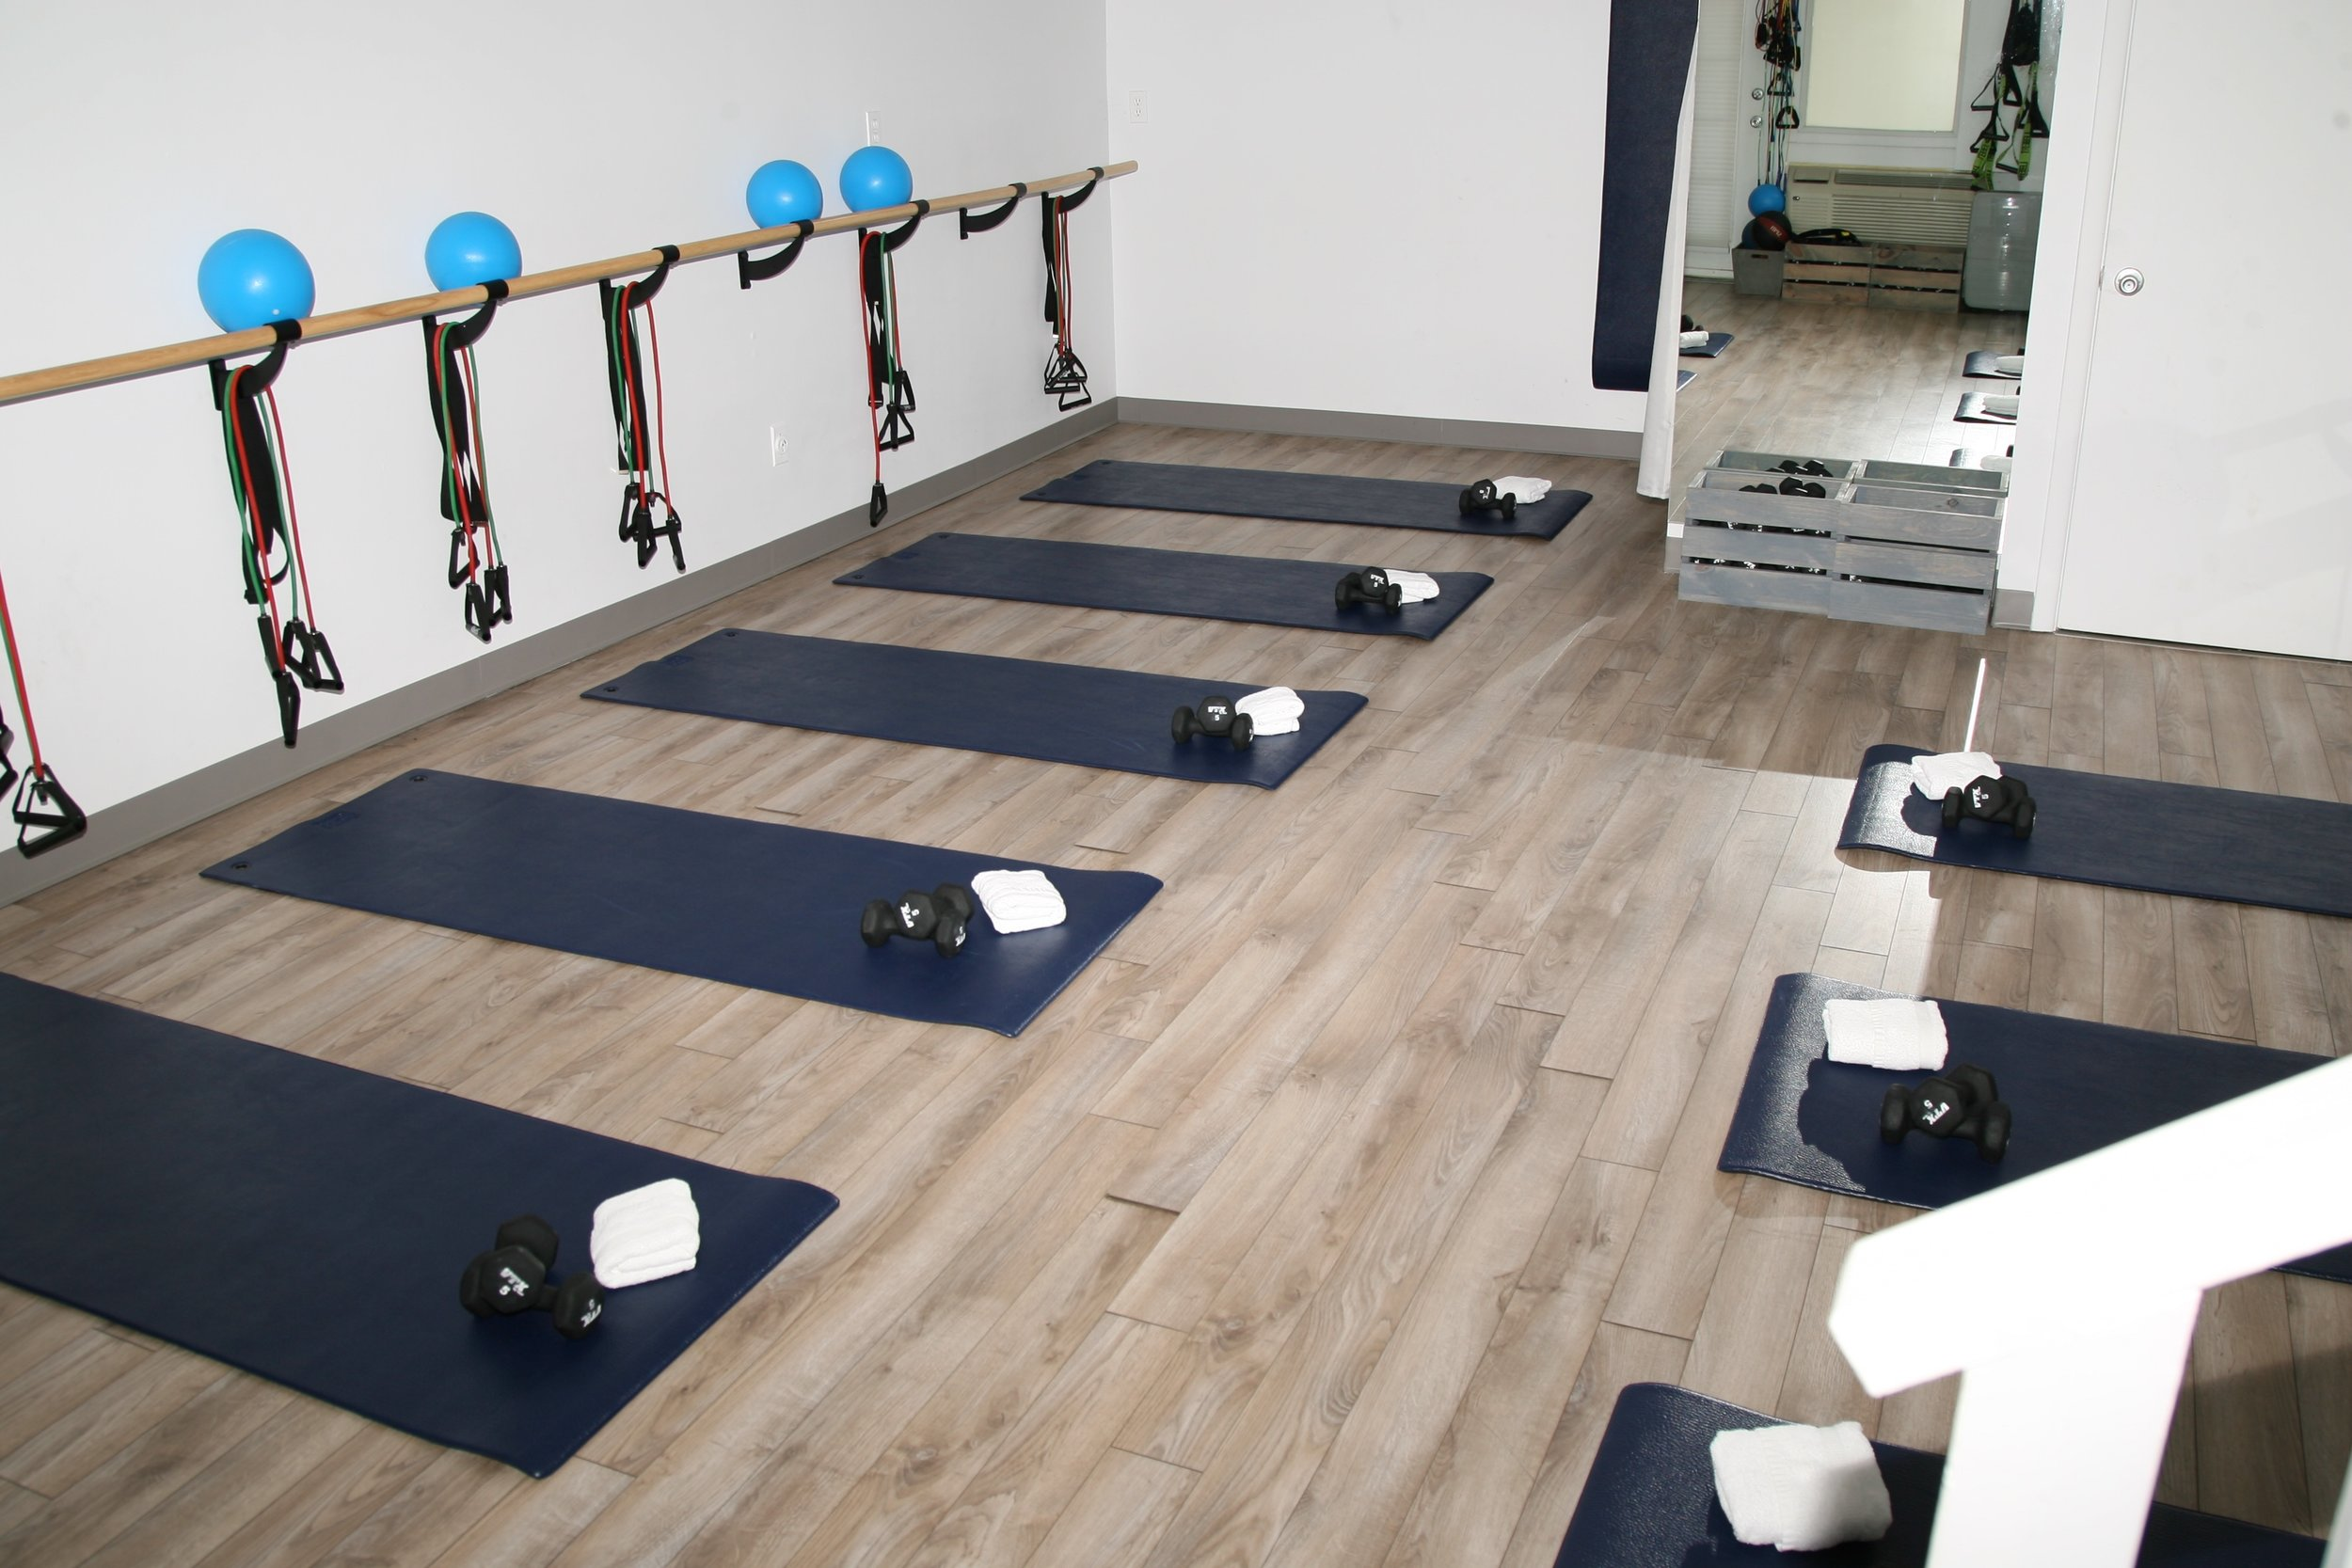 Barre and Mats